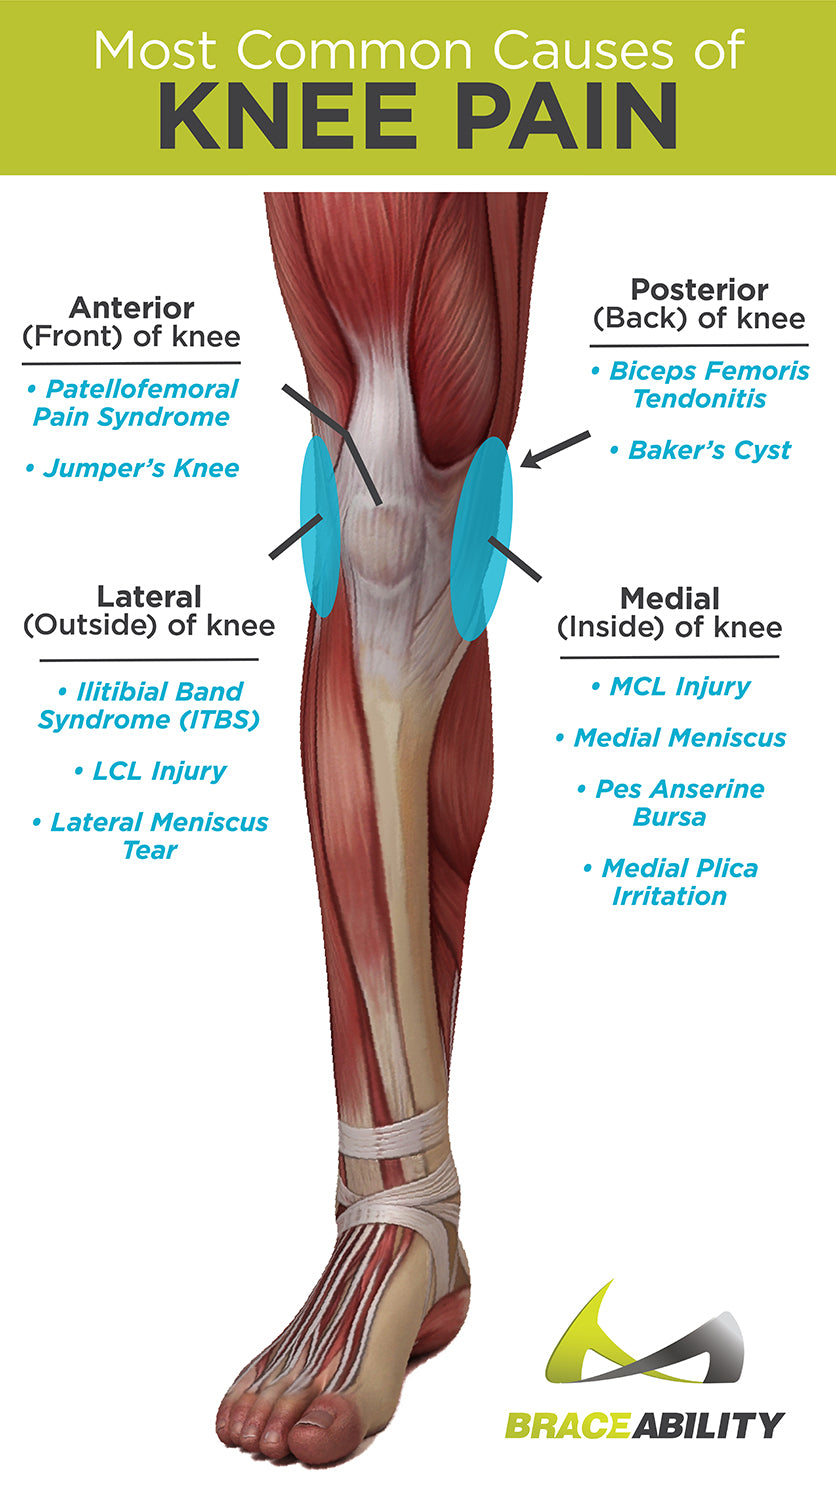 Types of knee pain and what causes anterior, posterior, medial and lateral knee pain problems